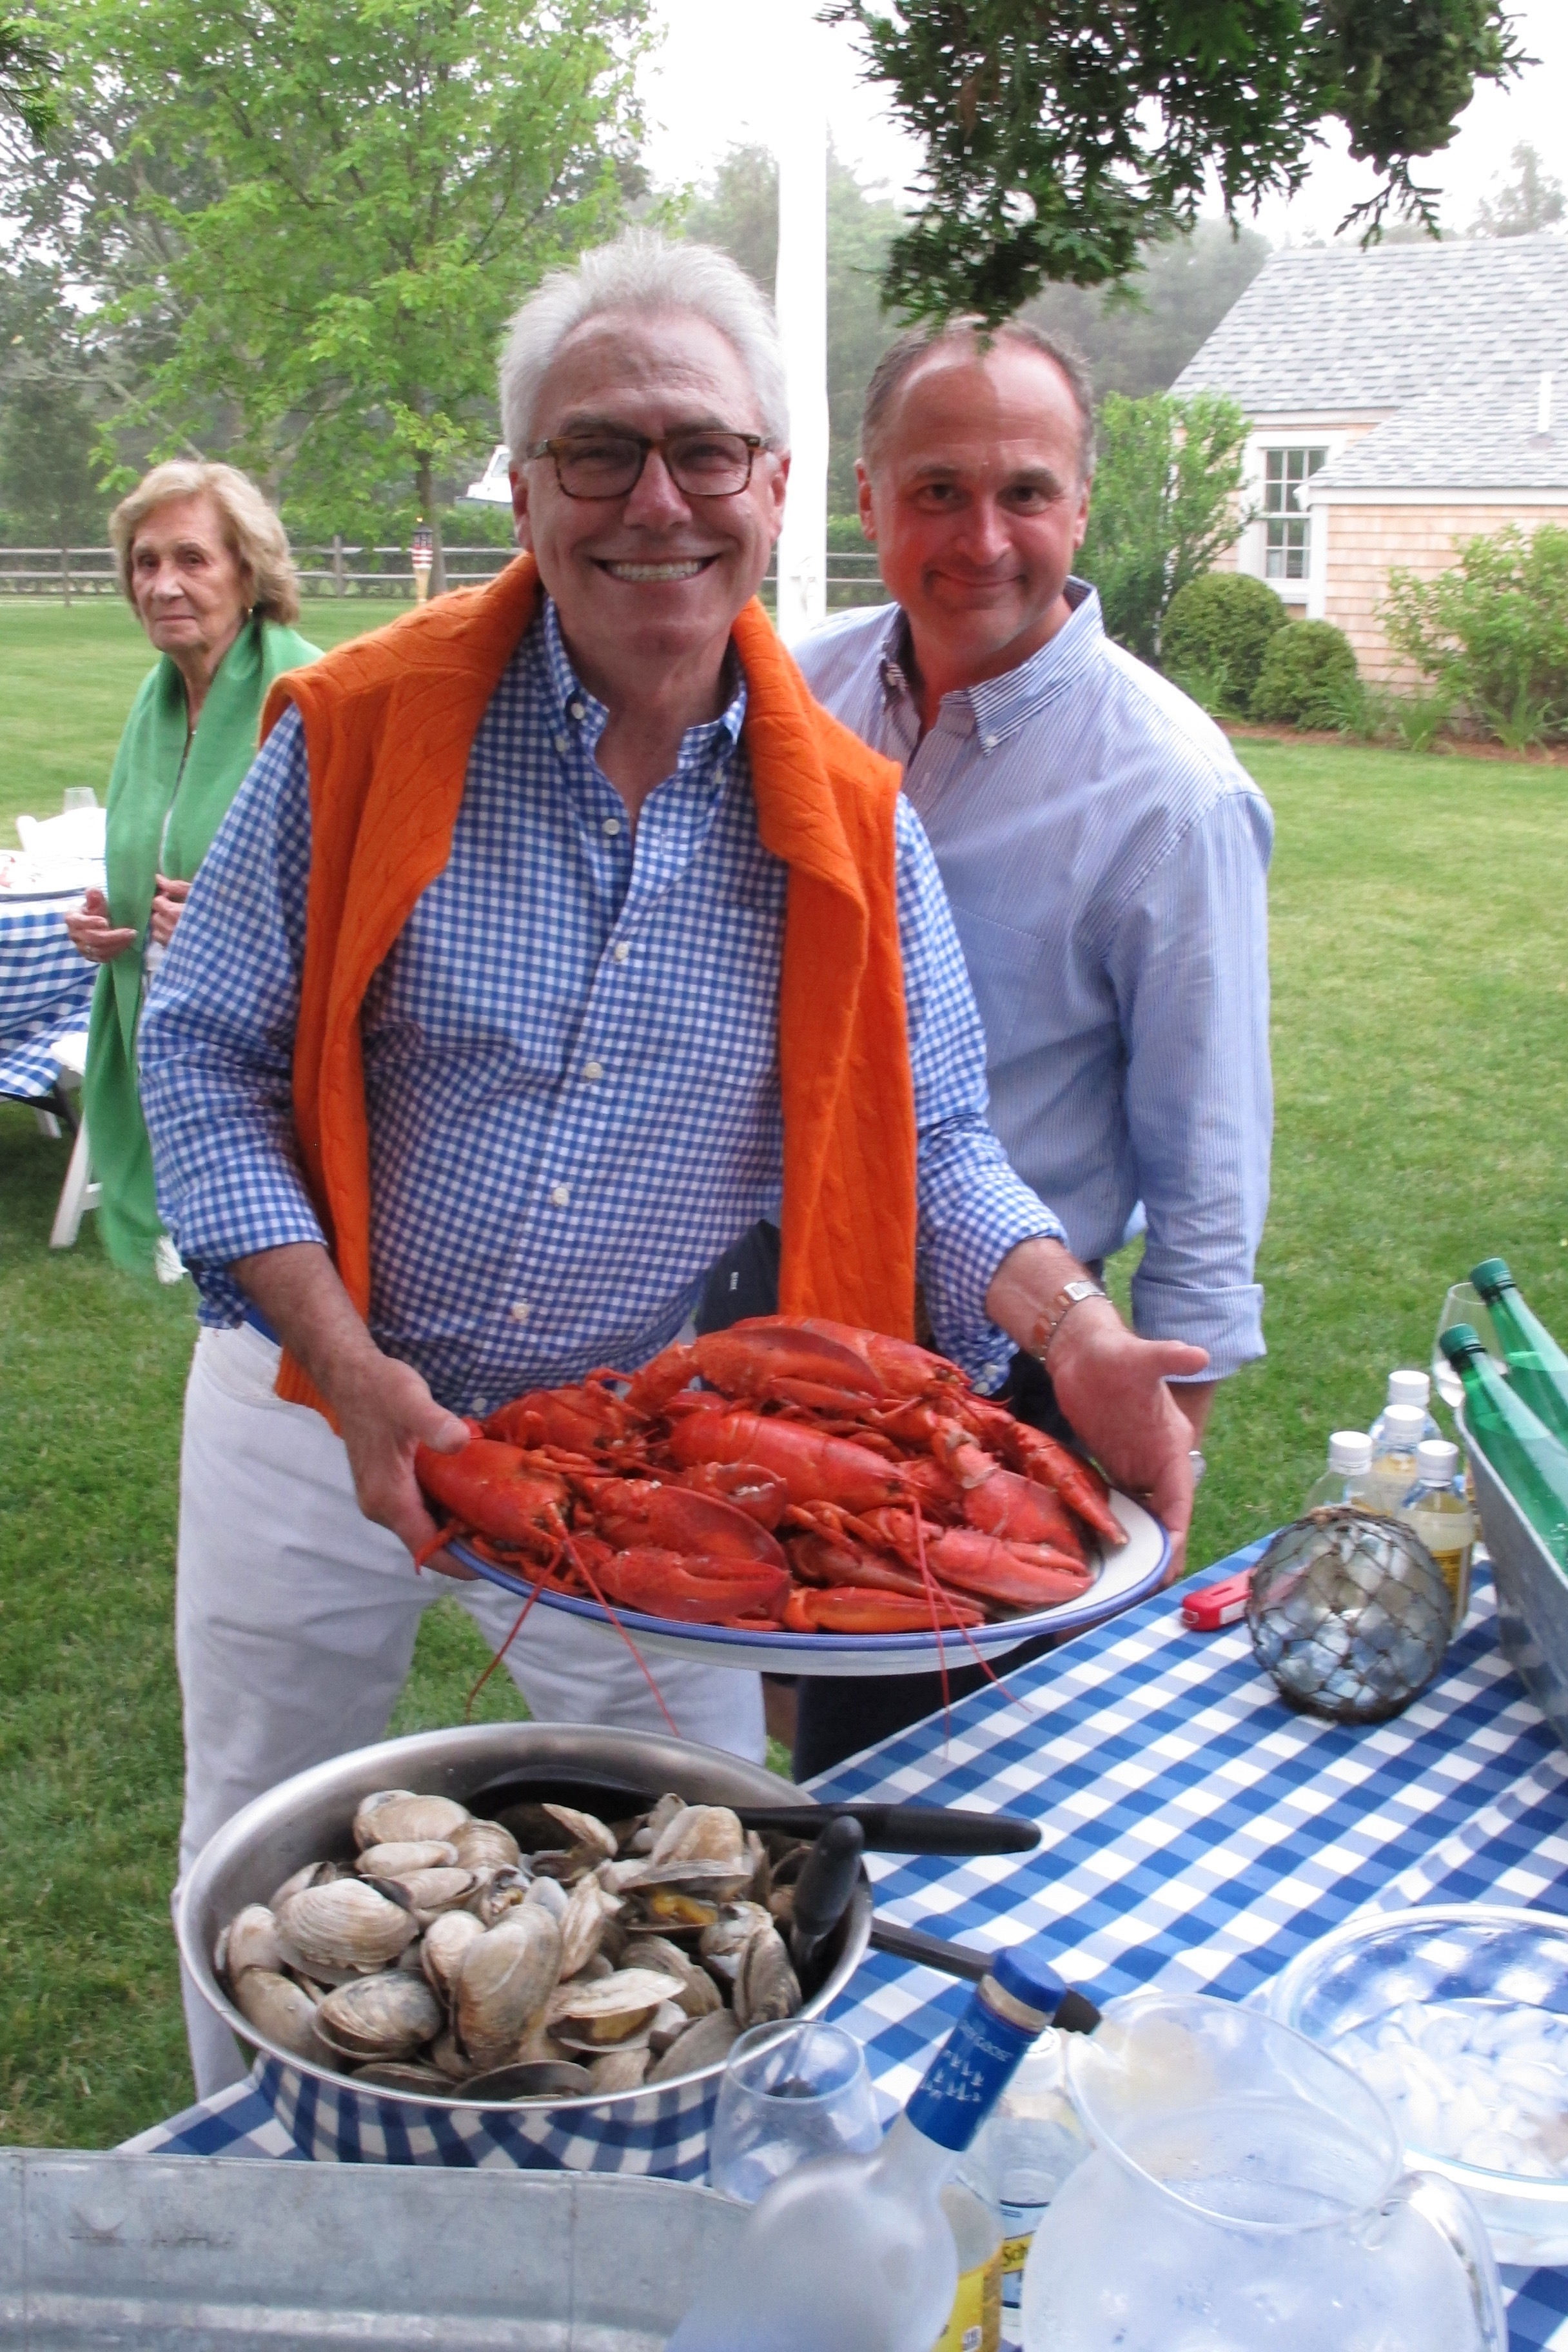 Gary holding a platter of freshly cooked lobsters.